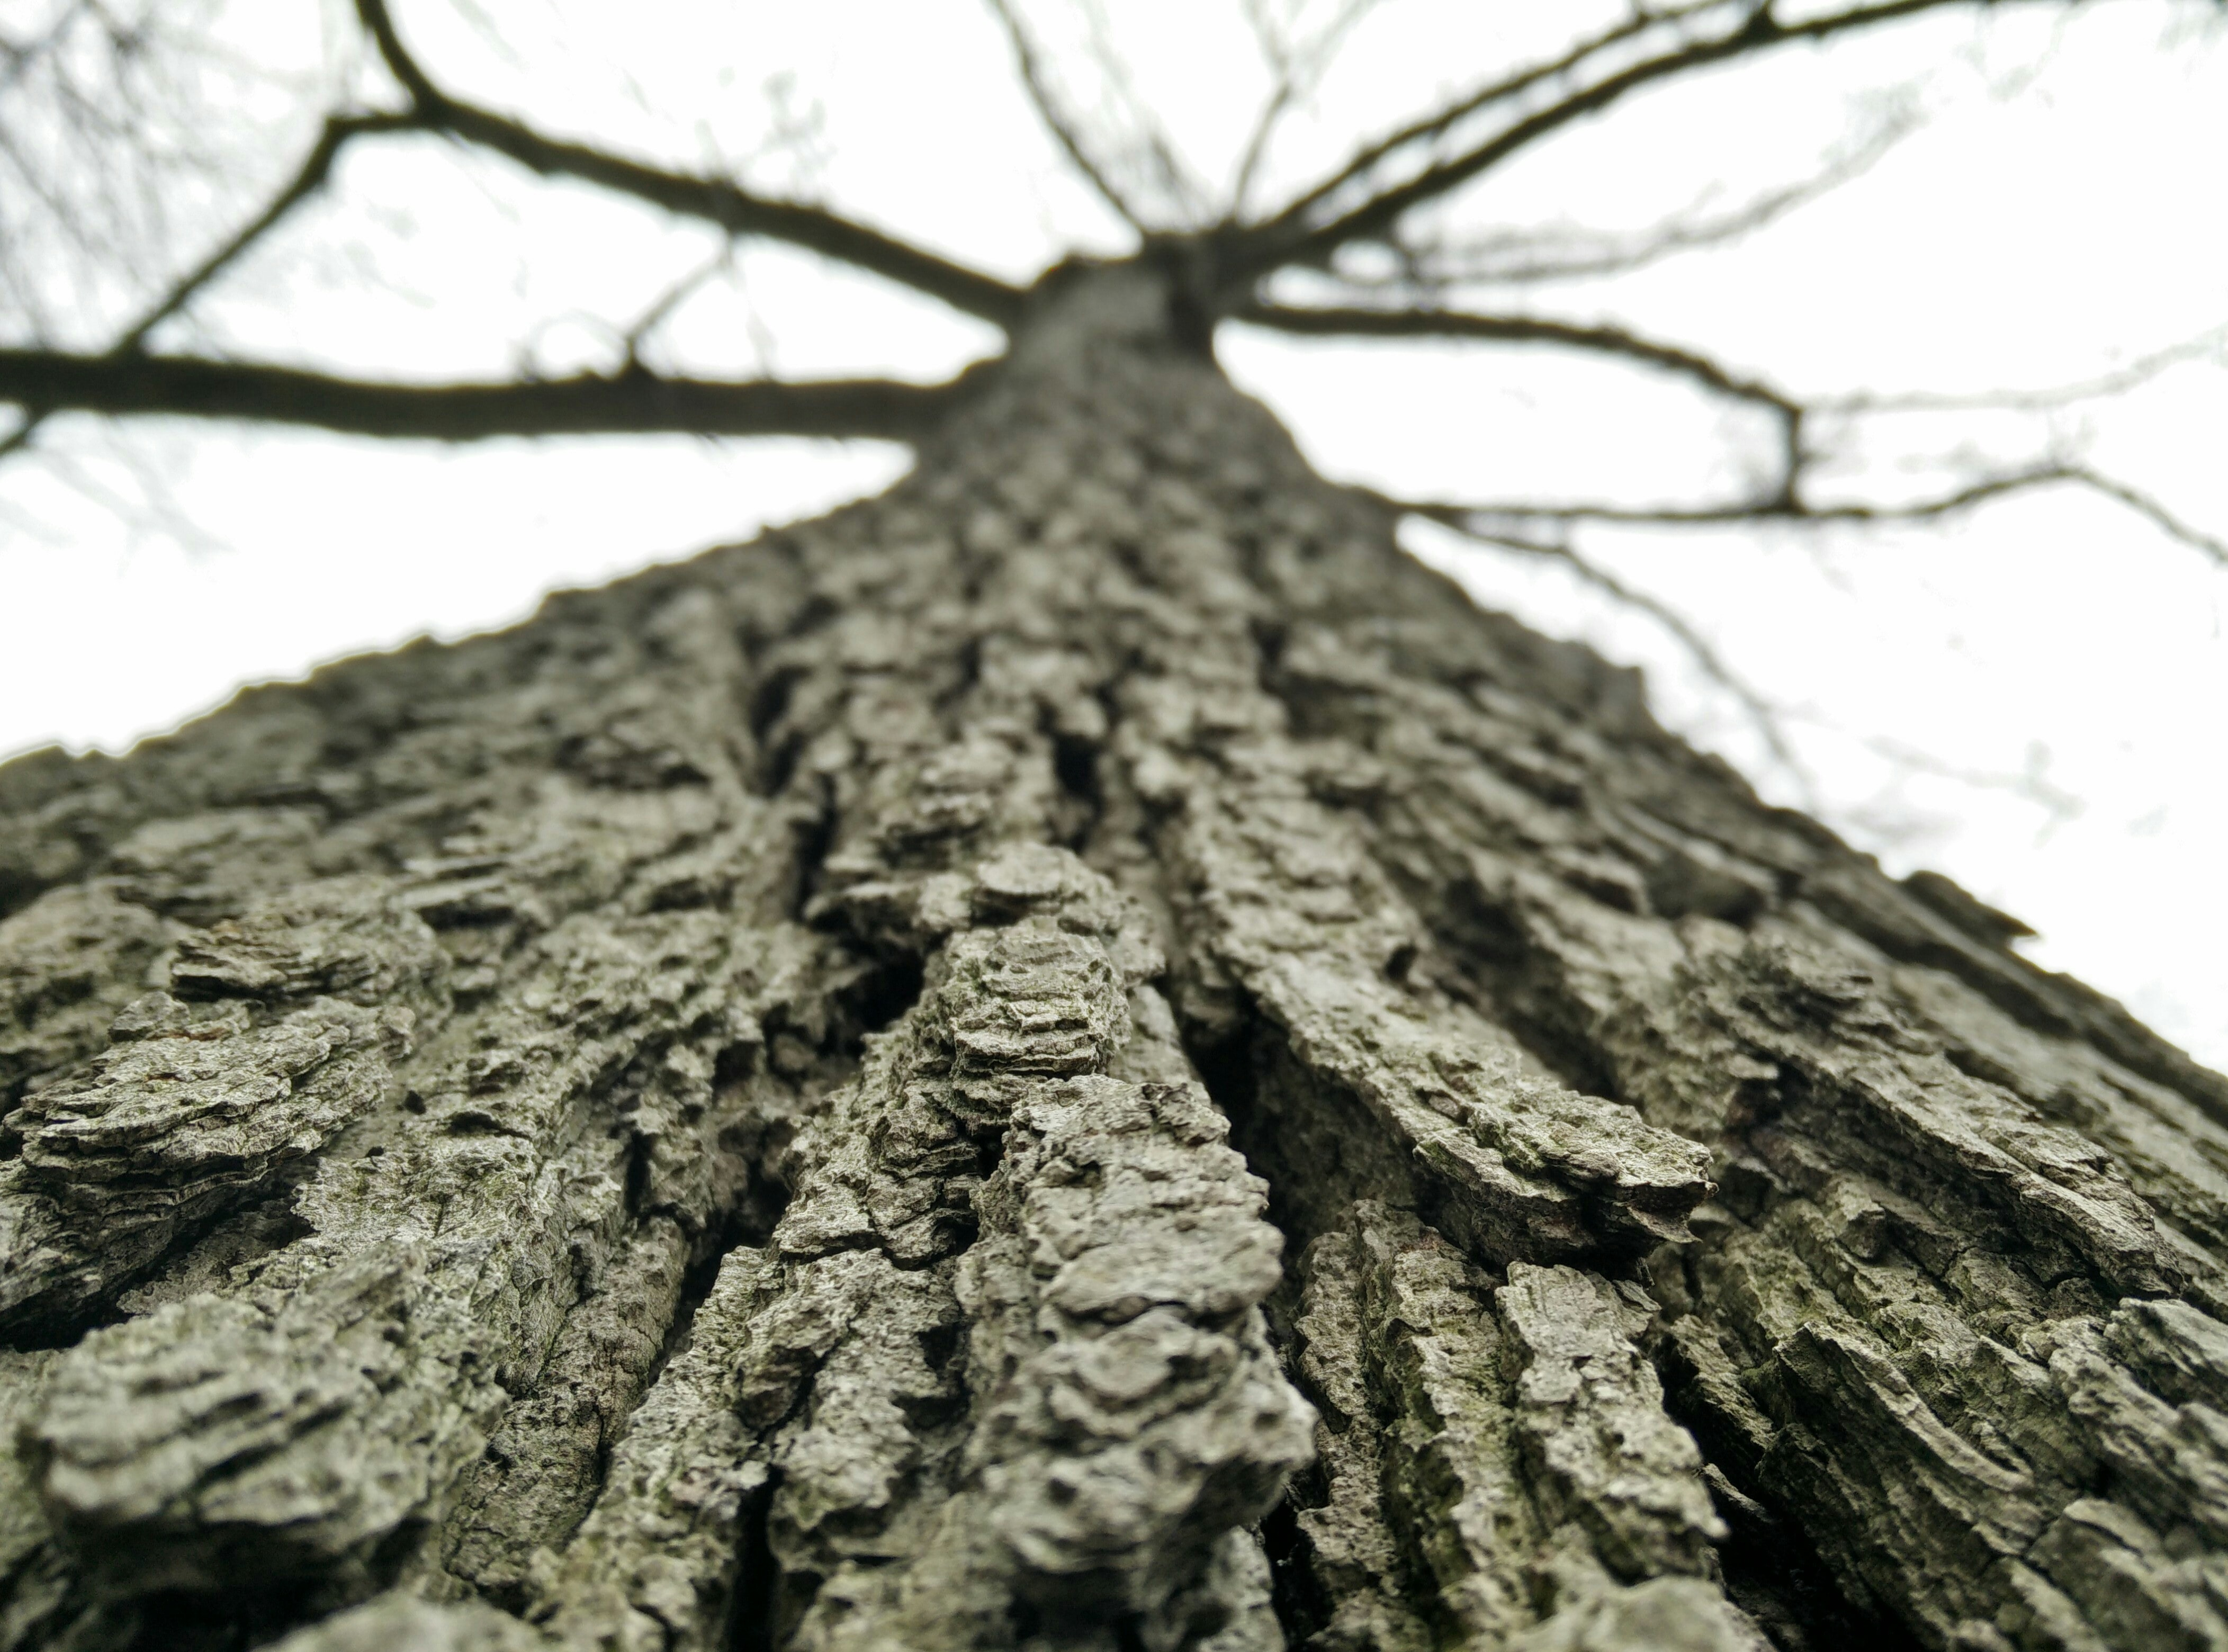 A low-angle macro shot of the bark of a tall tree